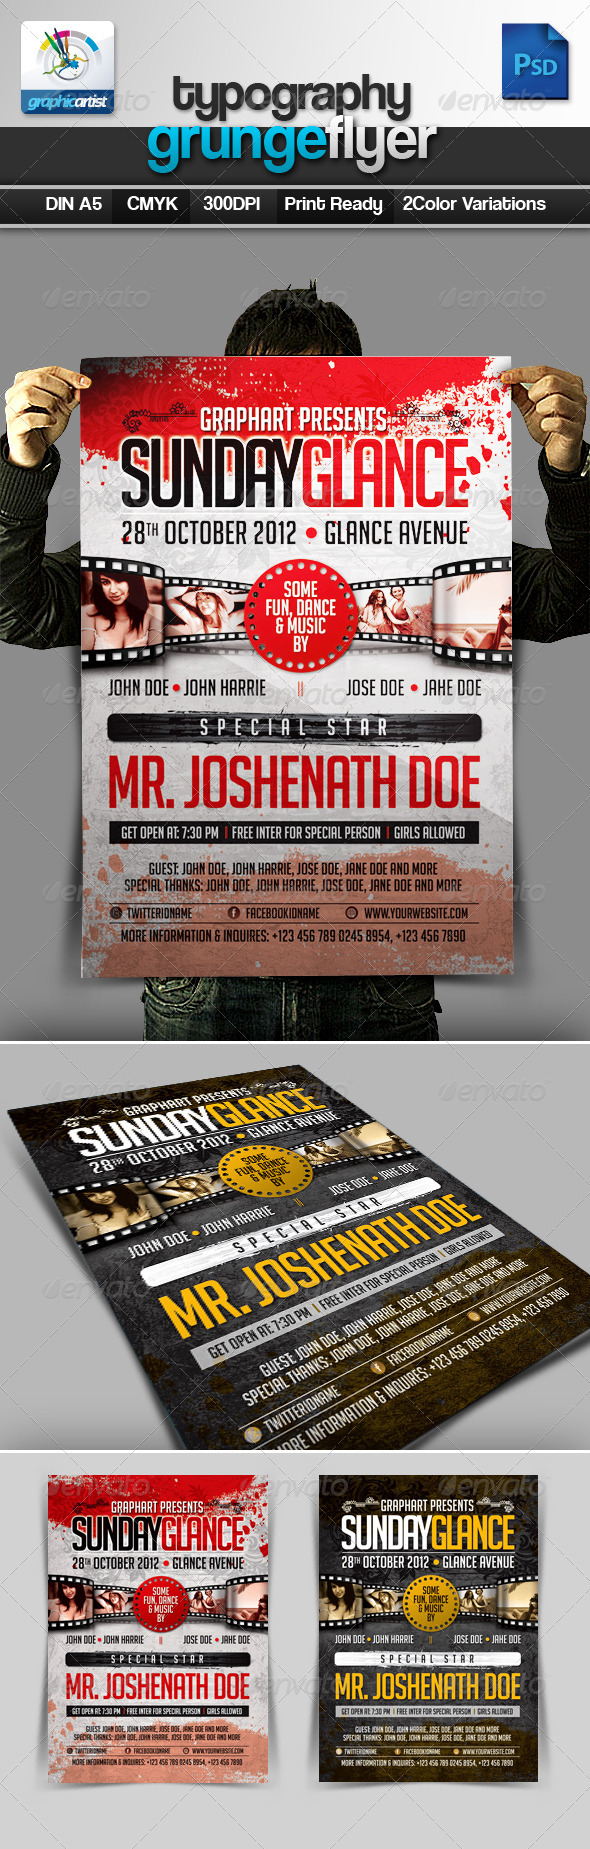 GraphicRiver Typography Grunge Flyer 3011885